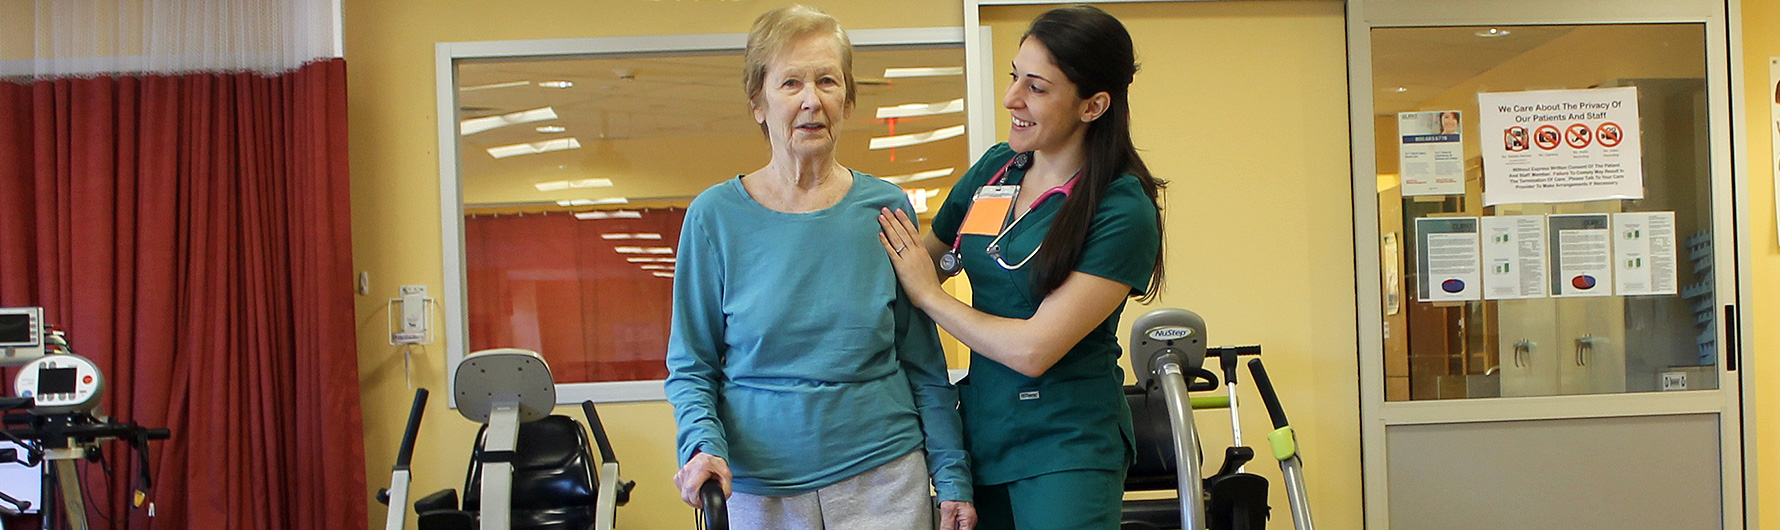 Patient and caregiver in the Comprehensive Inpatient Rehabilitation Program